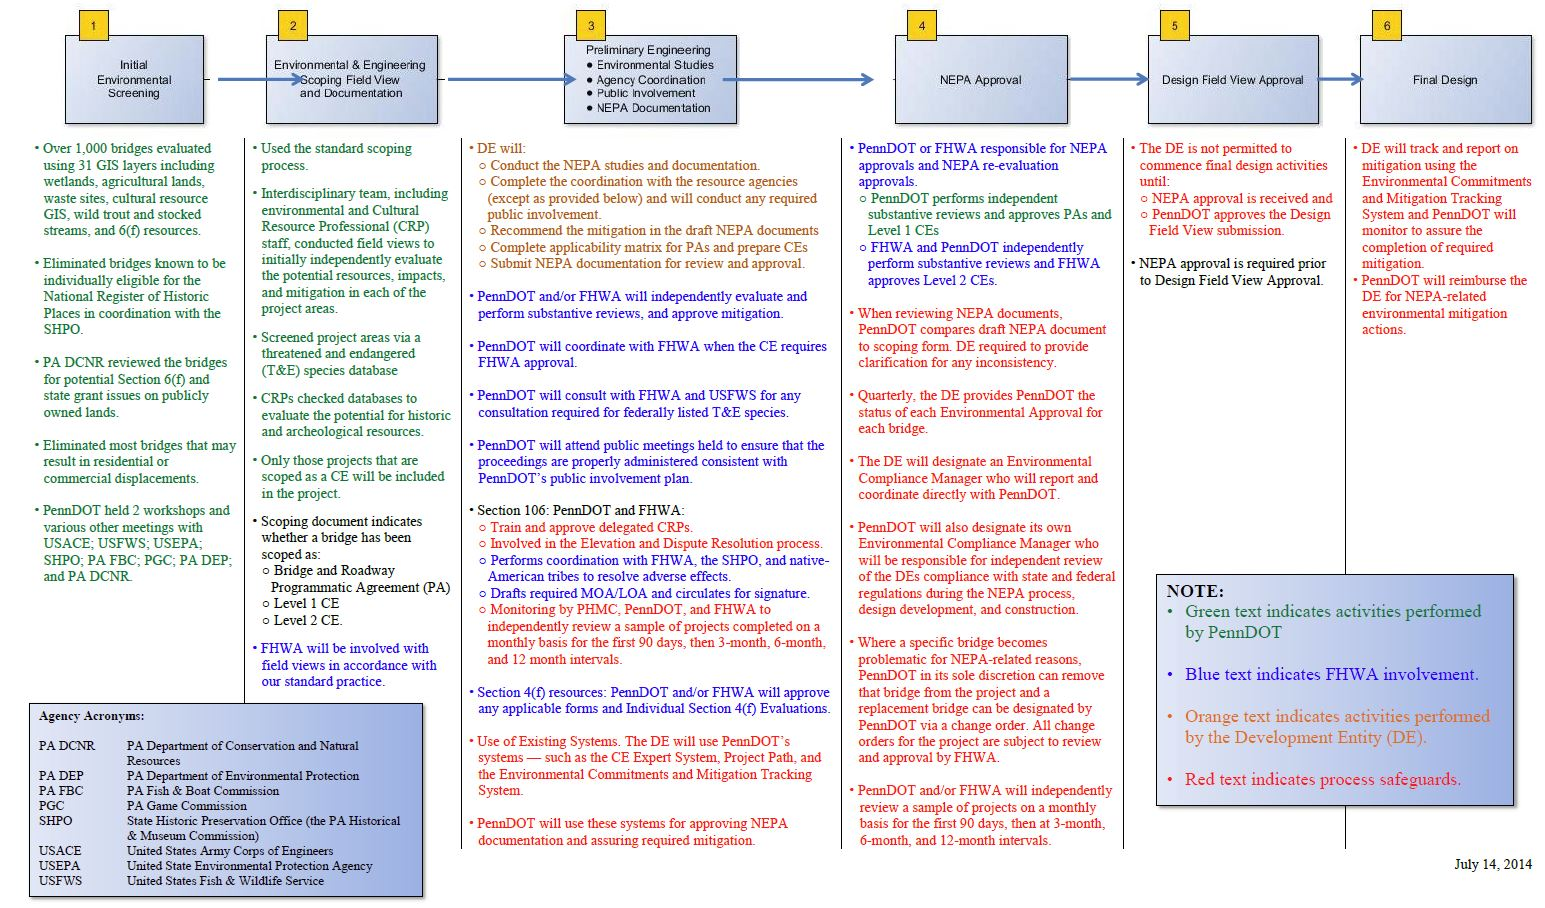 Nepa process flowchart create a flowchart exclusions process view full size version of flow chart nvjuhfo Choice Image